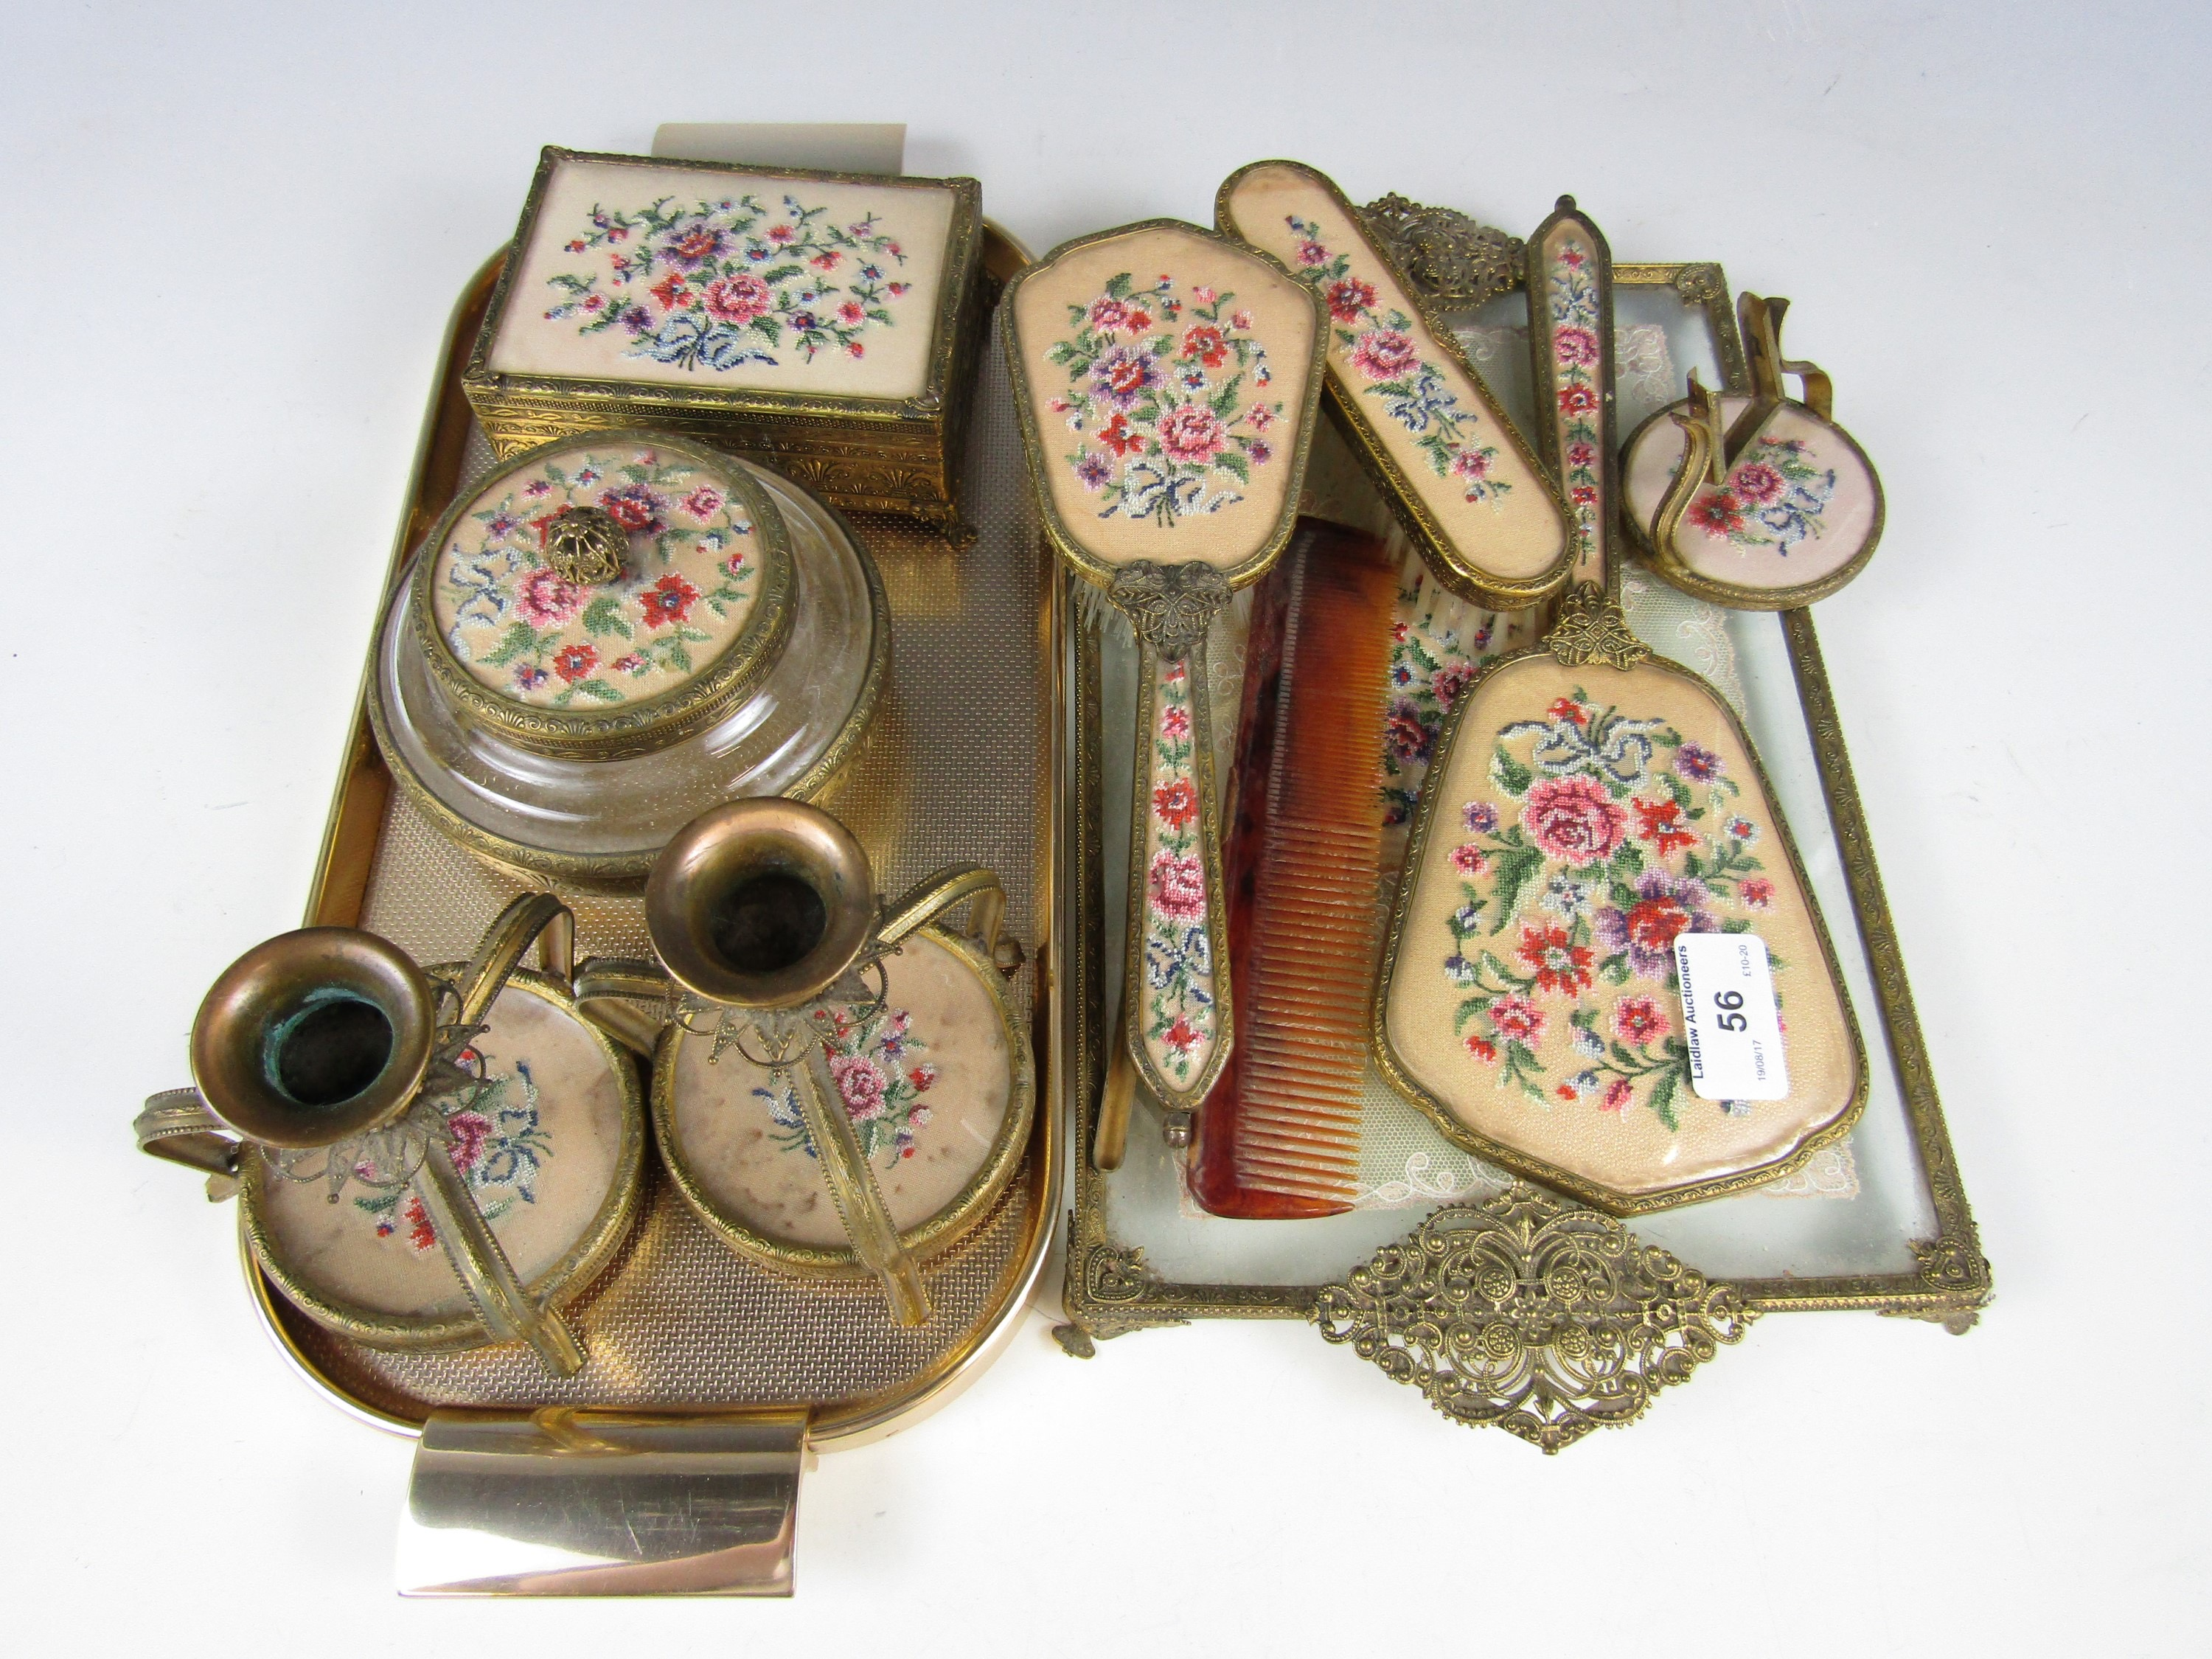 Lot 56 - A 1940's hand embroidered dressing table set